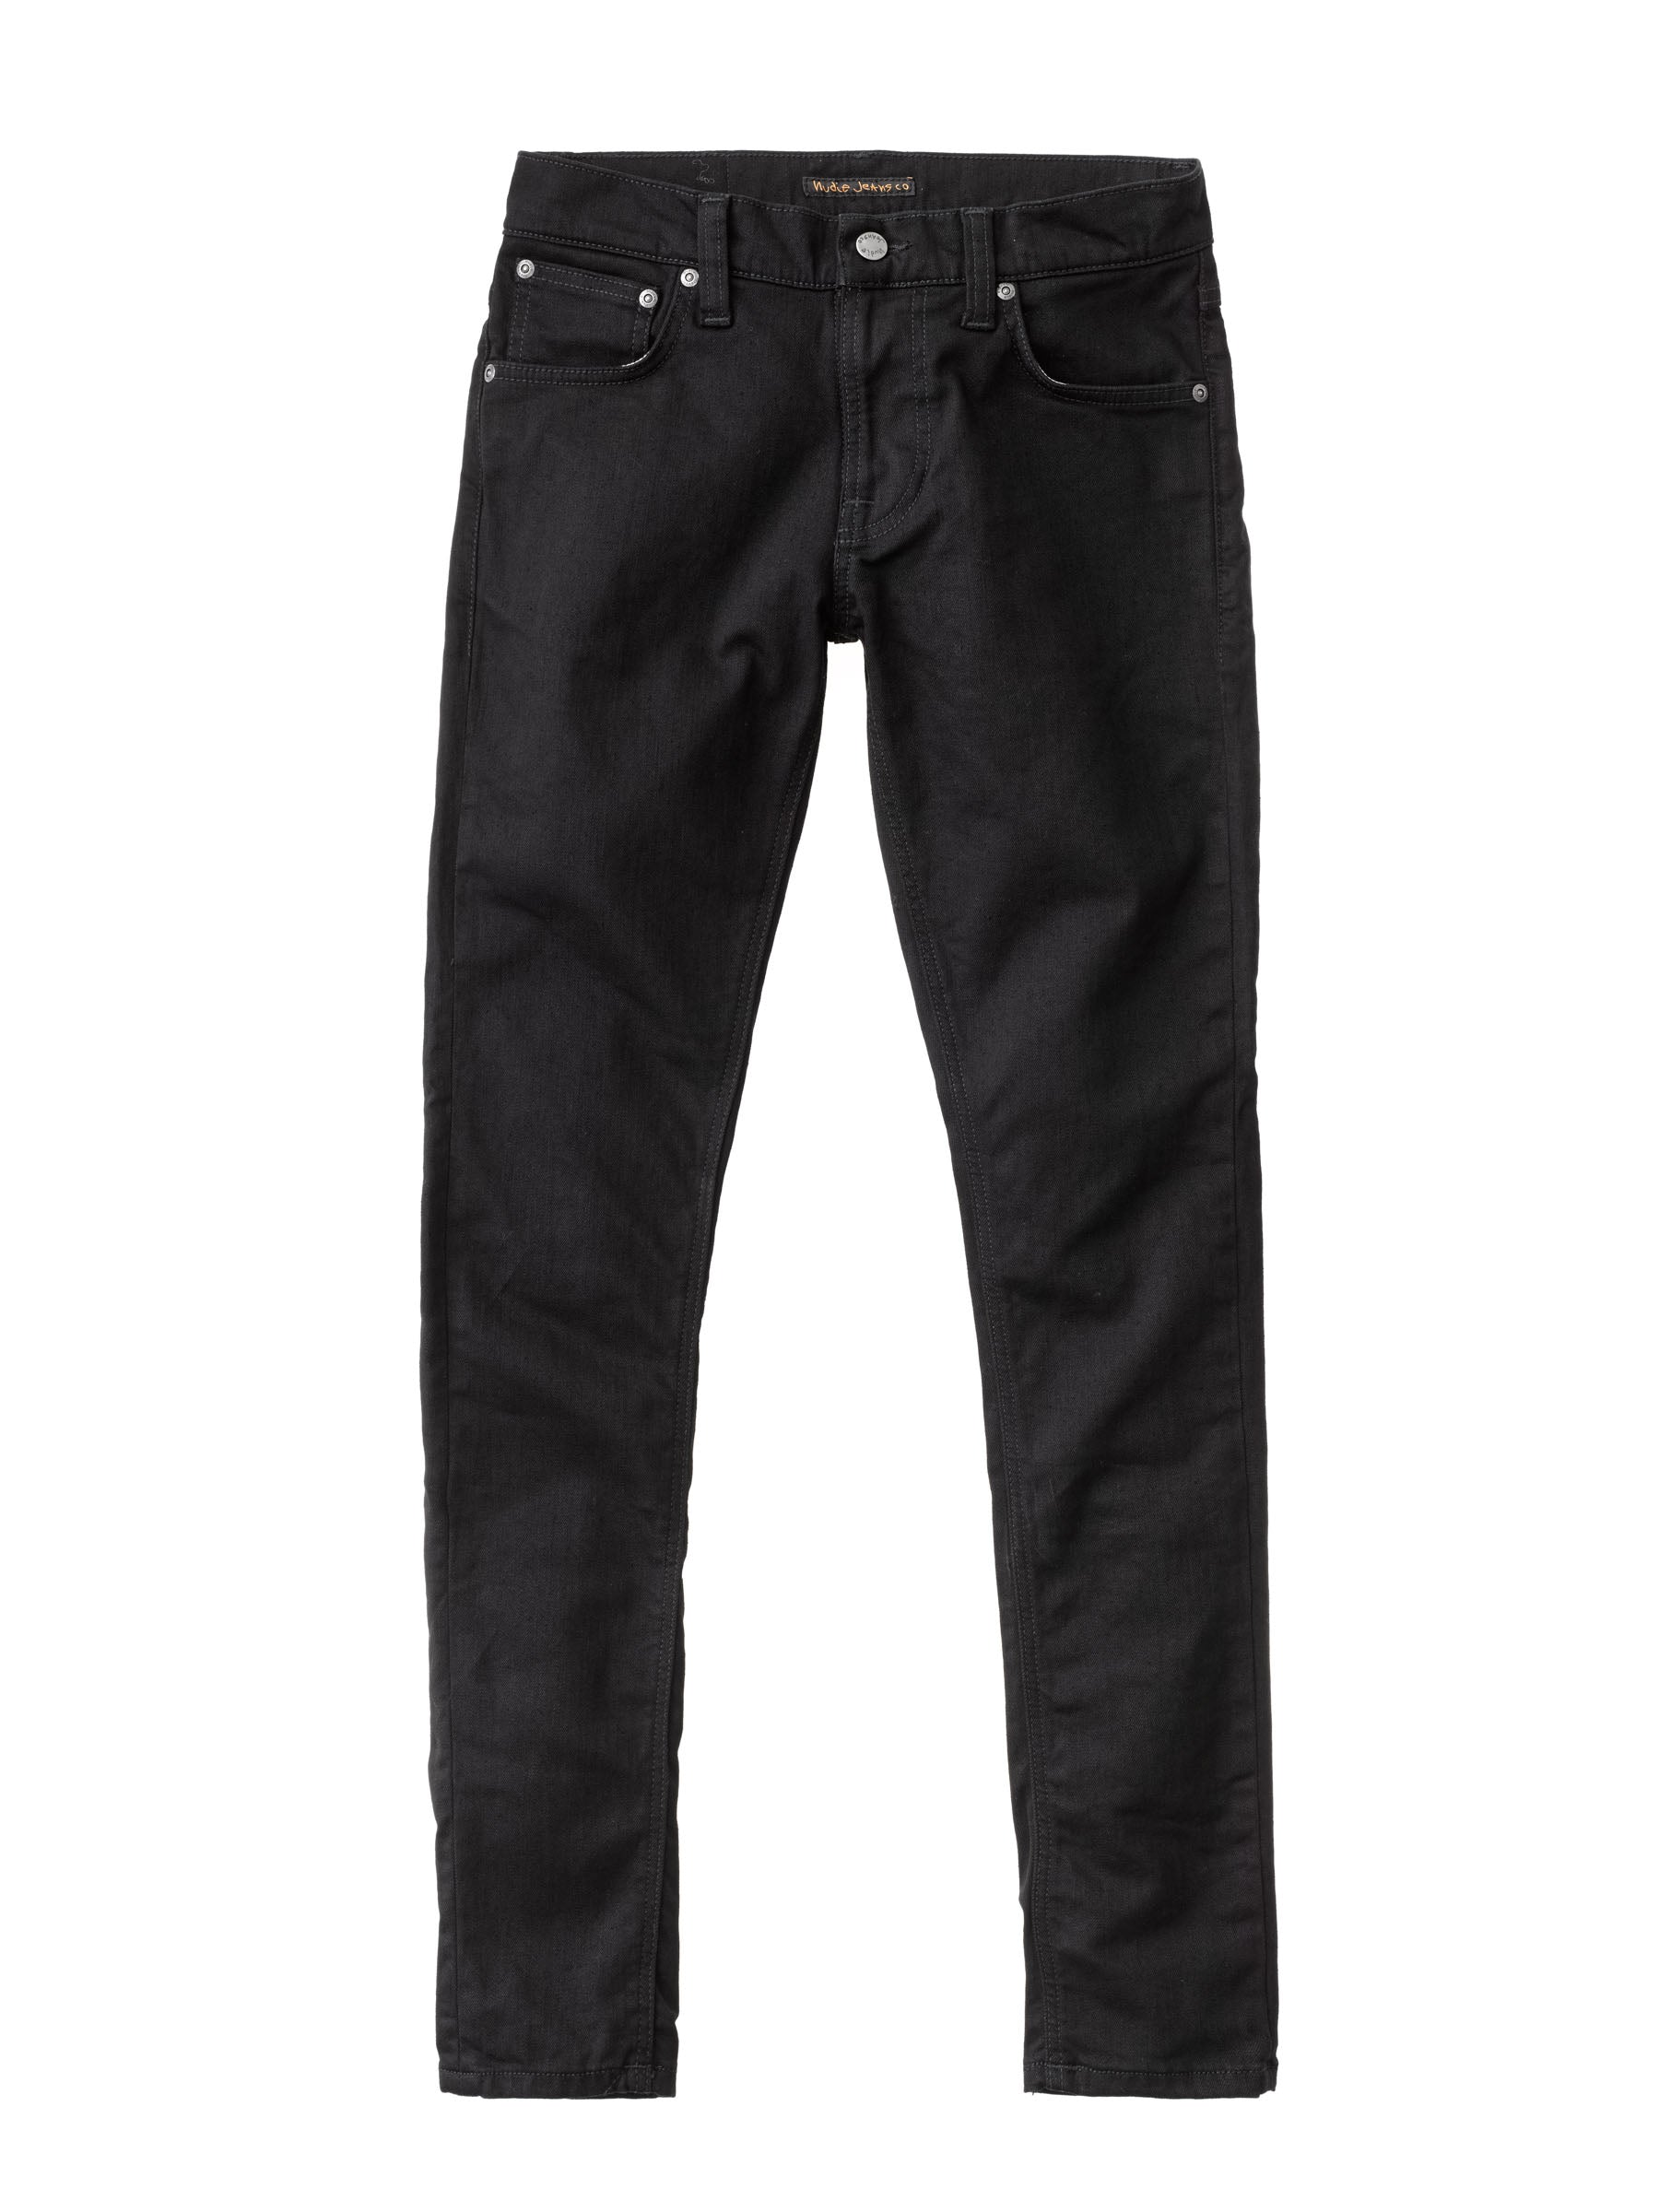 Jean skinny noir coton bio - tight terry - Nudie Jeans num 4